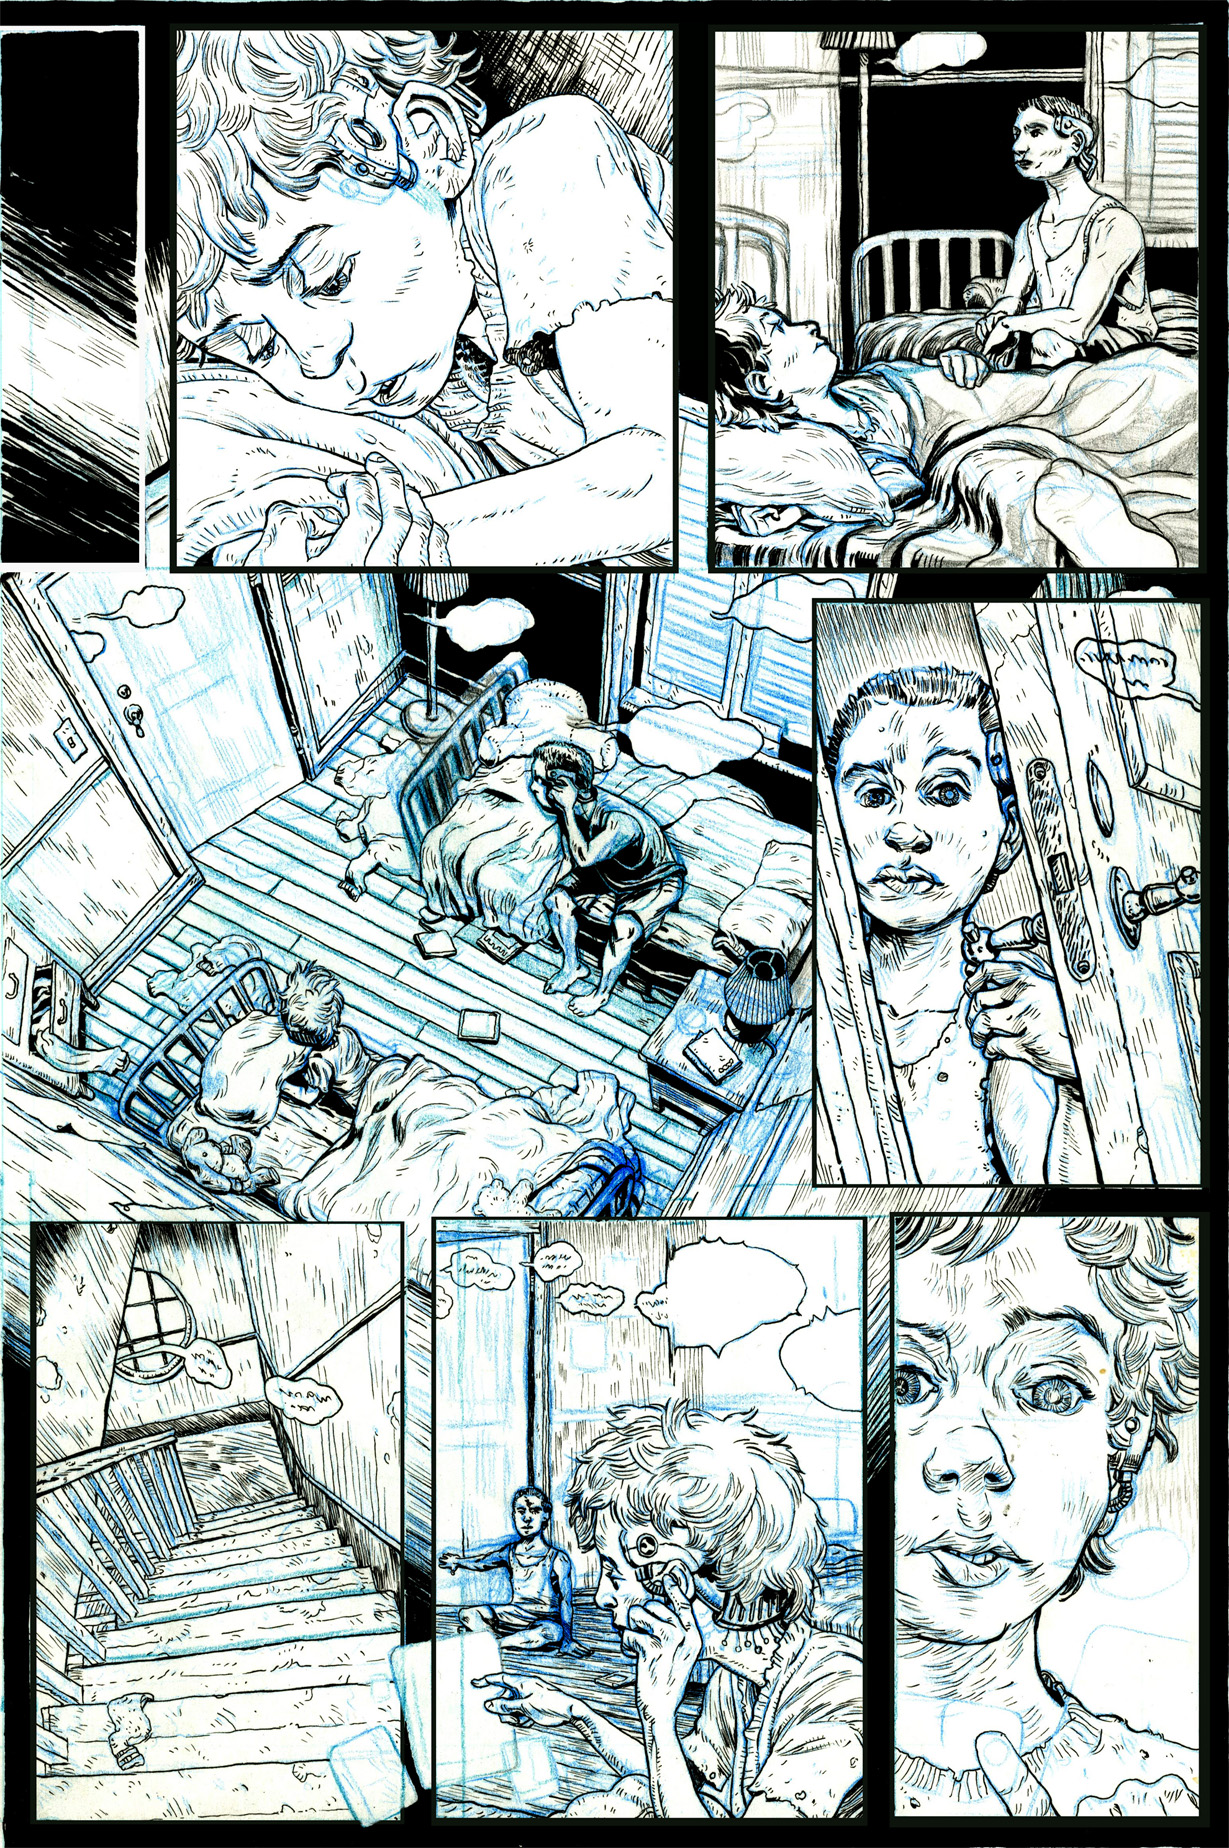 The first page complete with blue pencil and unfilled in blacks.